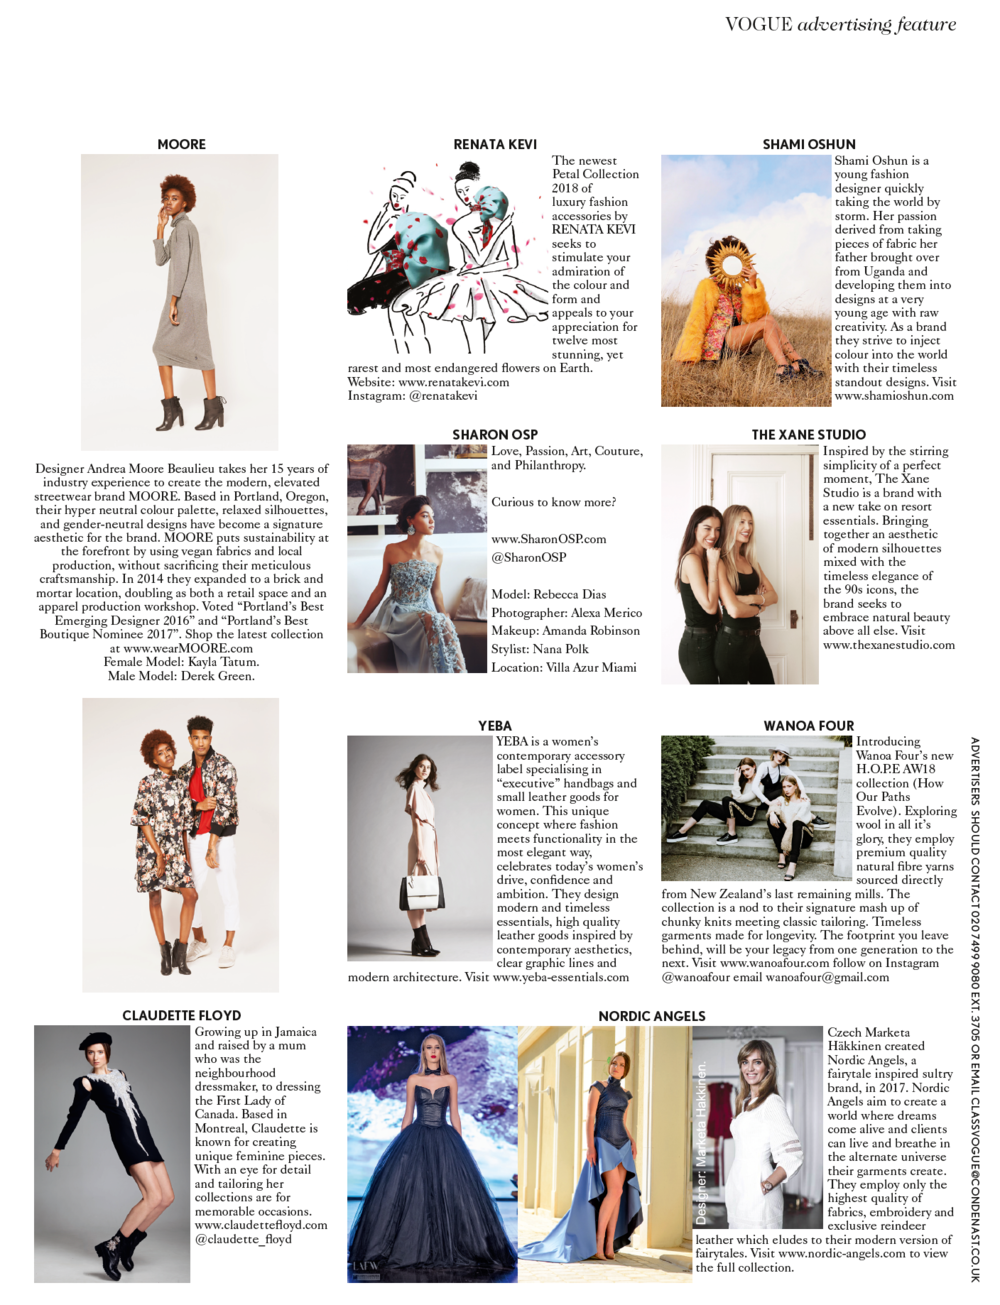 VOGUE 2018 Jan issue 221 Designer Profile.png